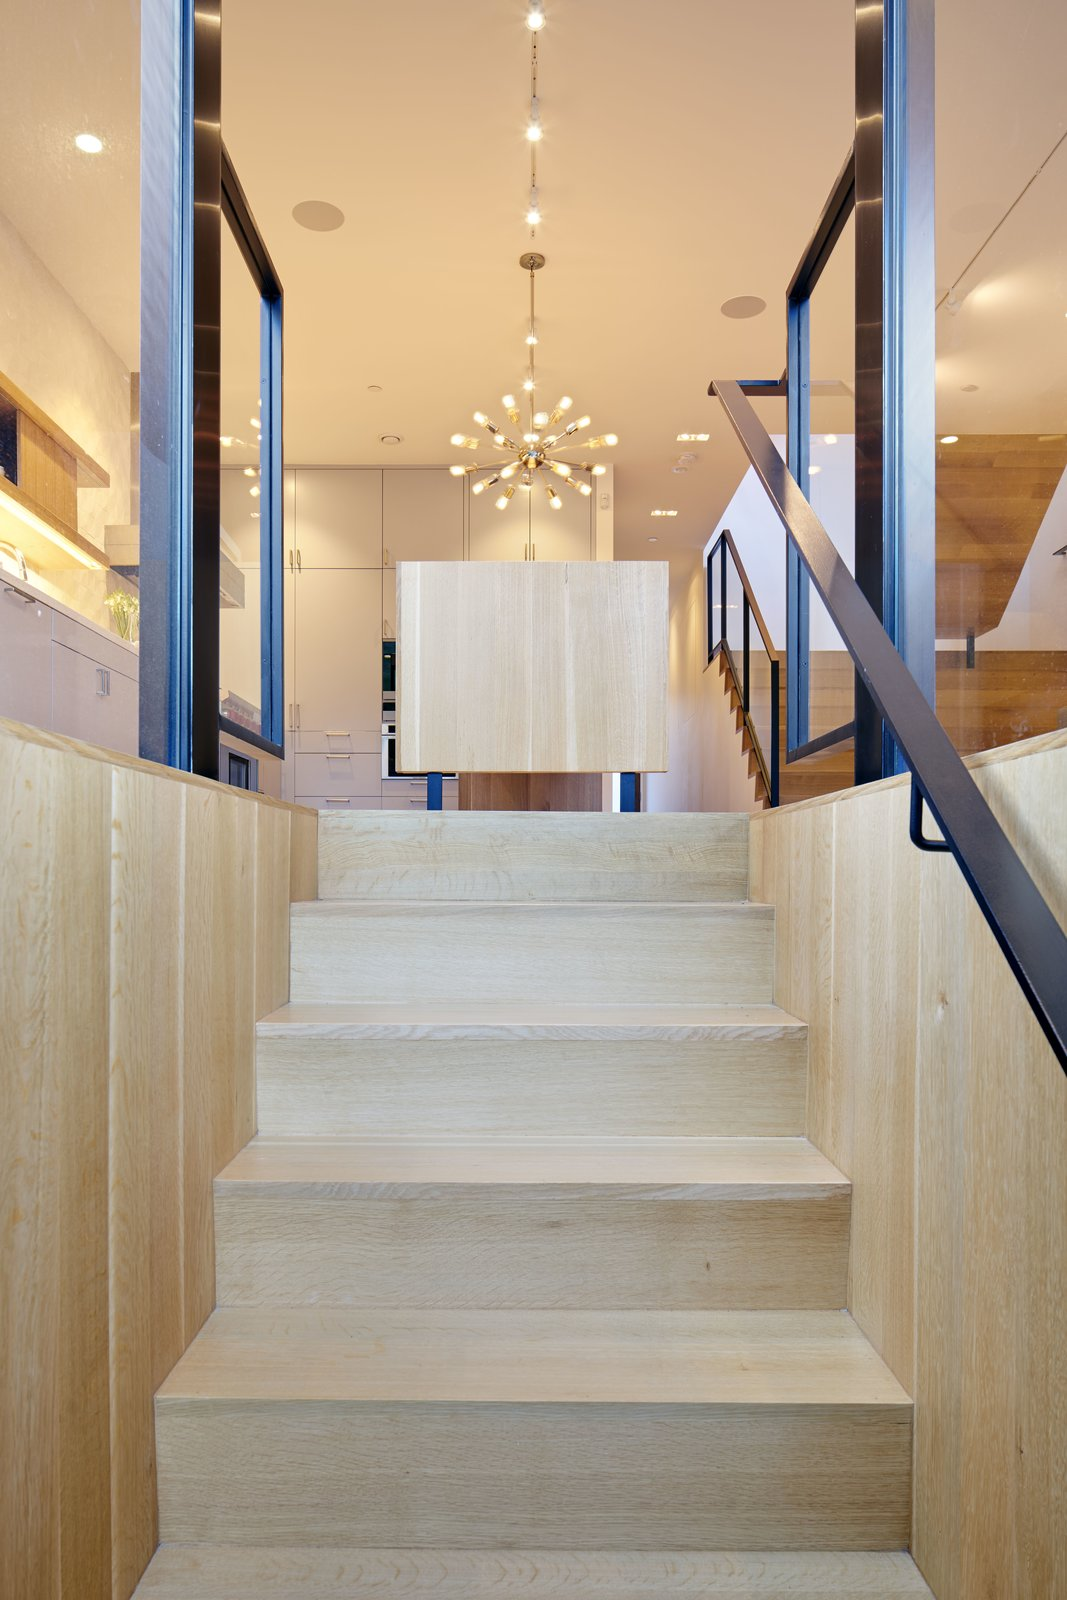 Staircase, Wood Tread, and Metal Railing  29th Street Residence by Schwartz and Architecture